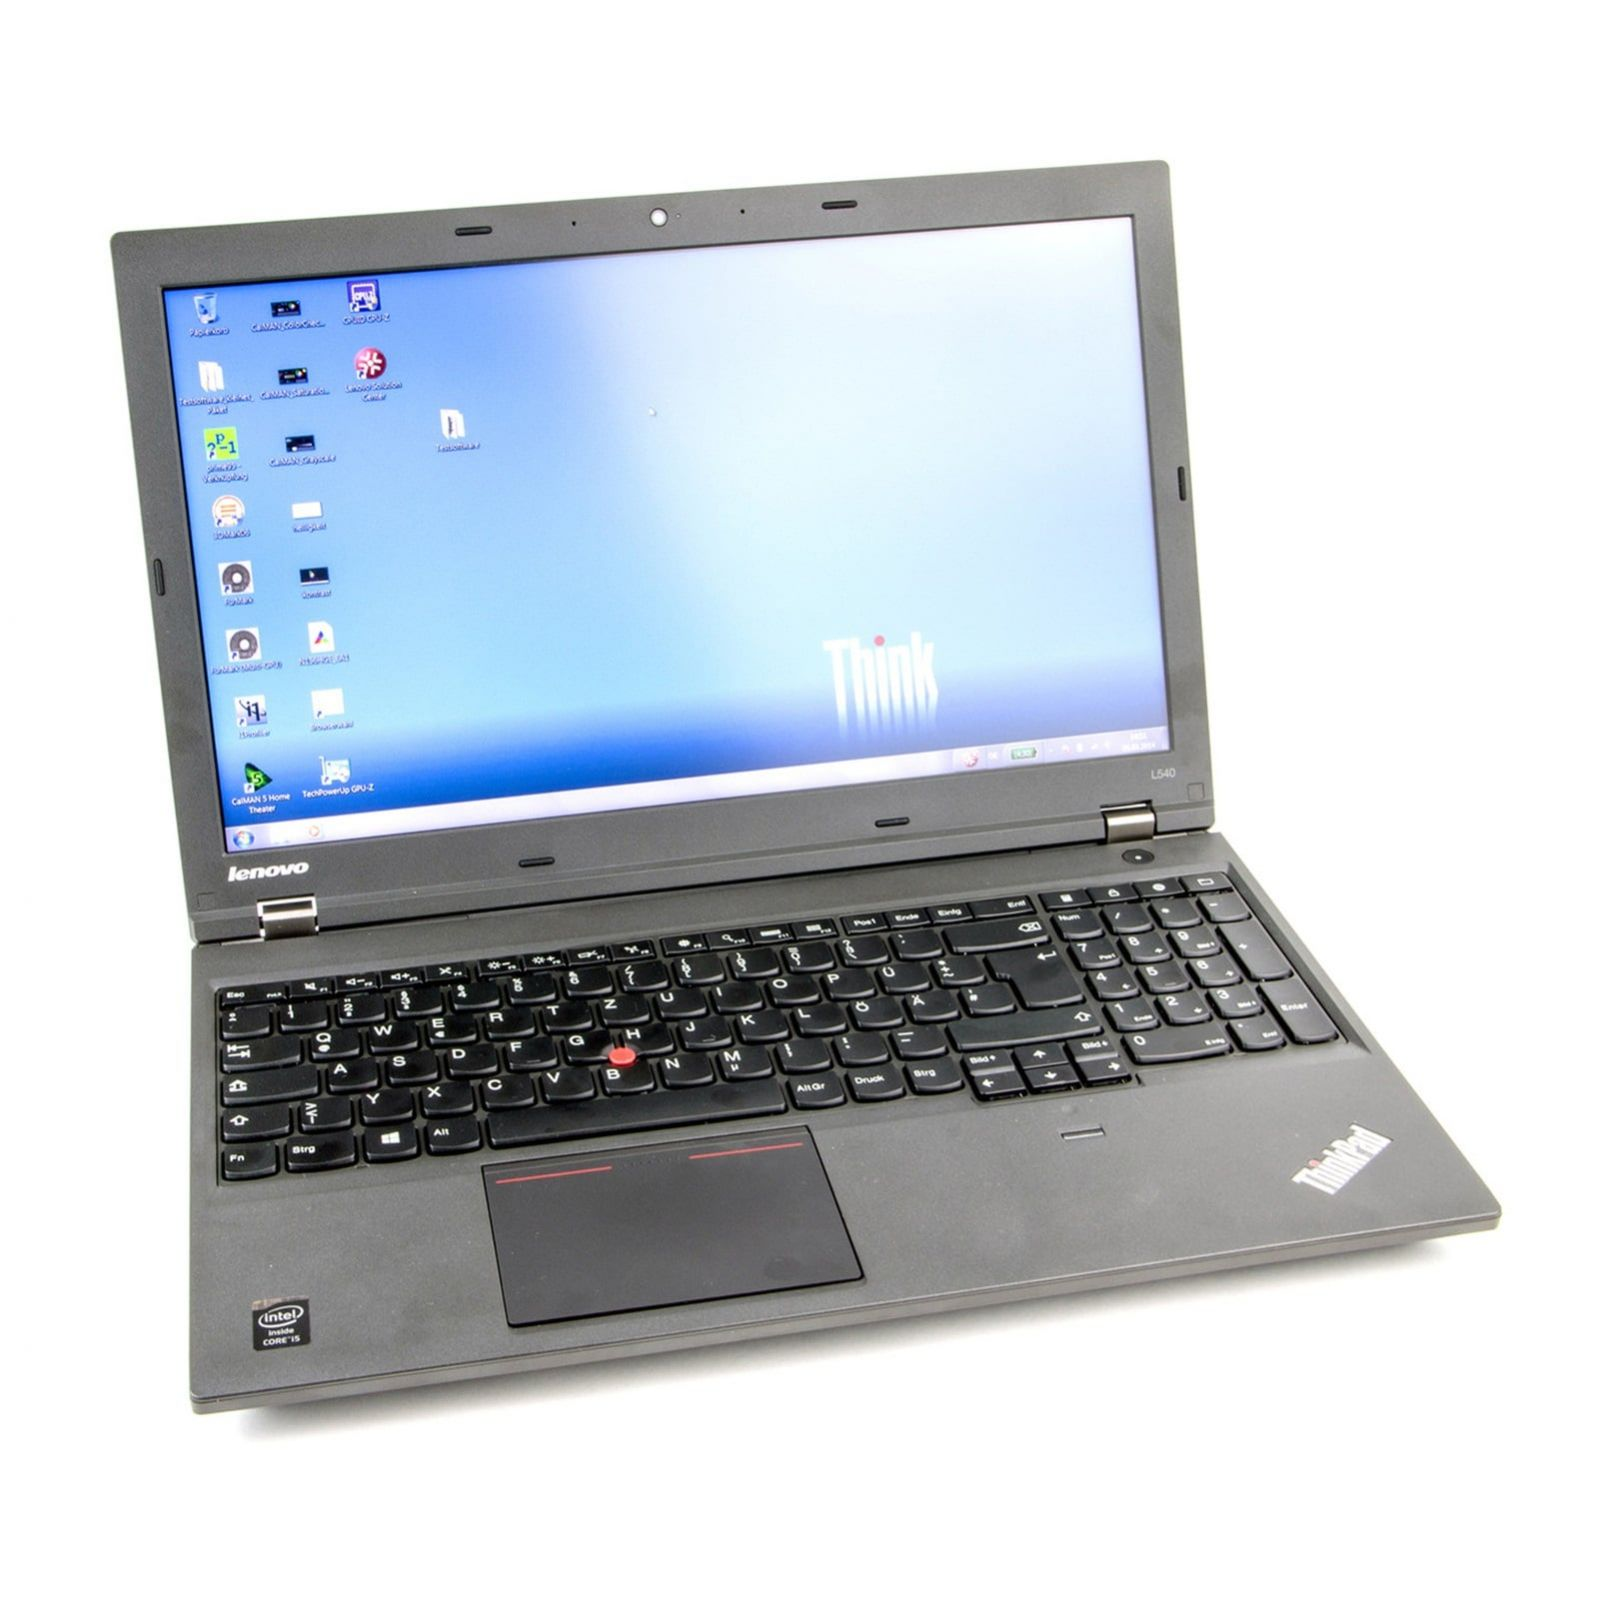 Lenovo Thinkpad L540 Core i7 4600M, Ram 4GB, HDD 320GB, 15.6 inch, vga on HD Graphics 4600